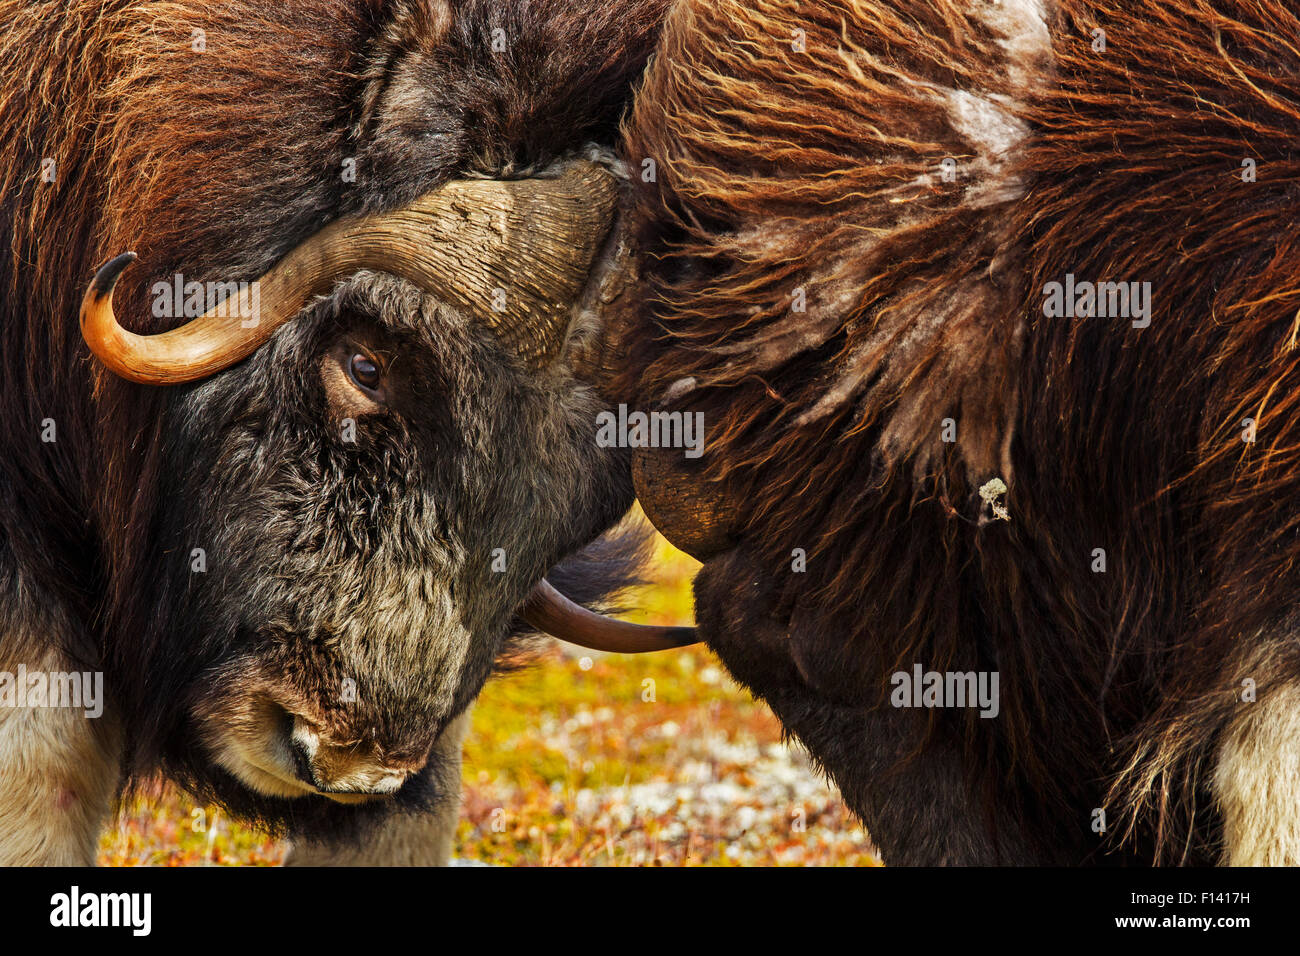 Musk ox (Ovibos moschatus) males fighting, Norway, September. - Stock Image